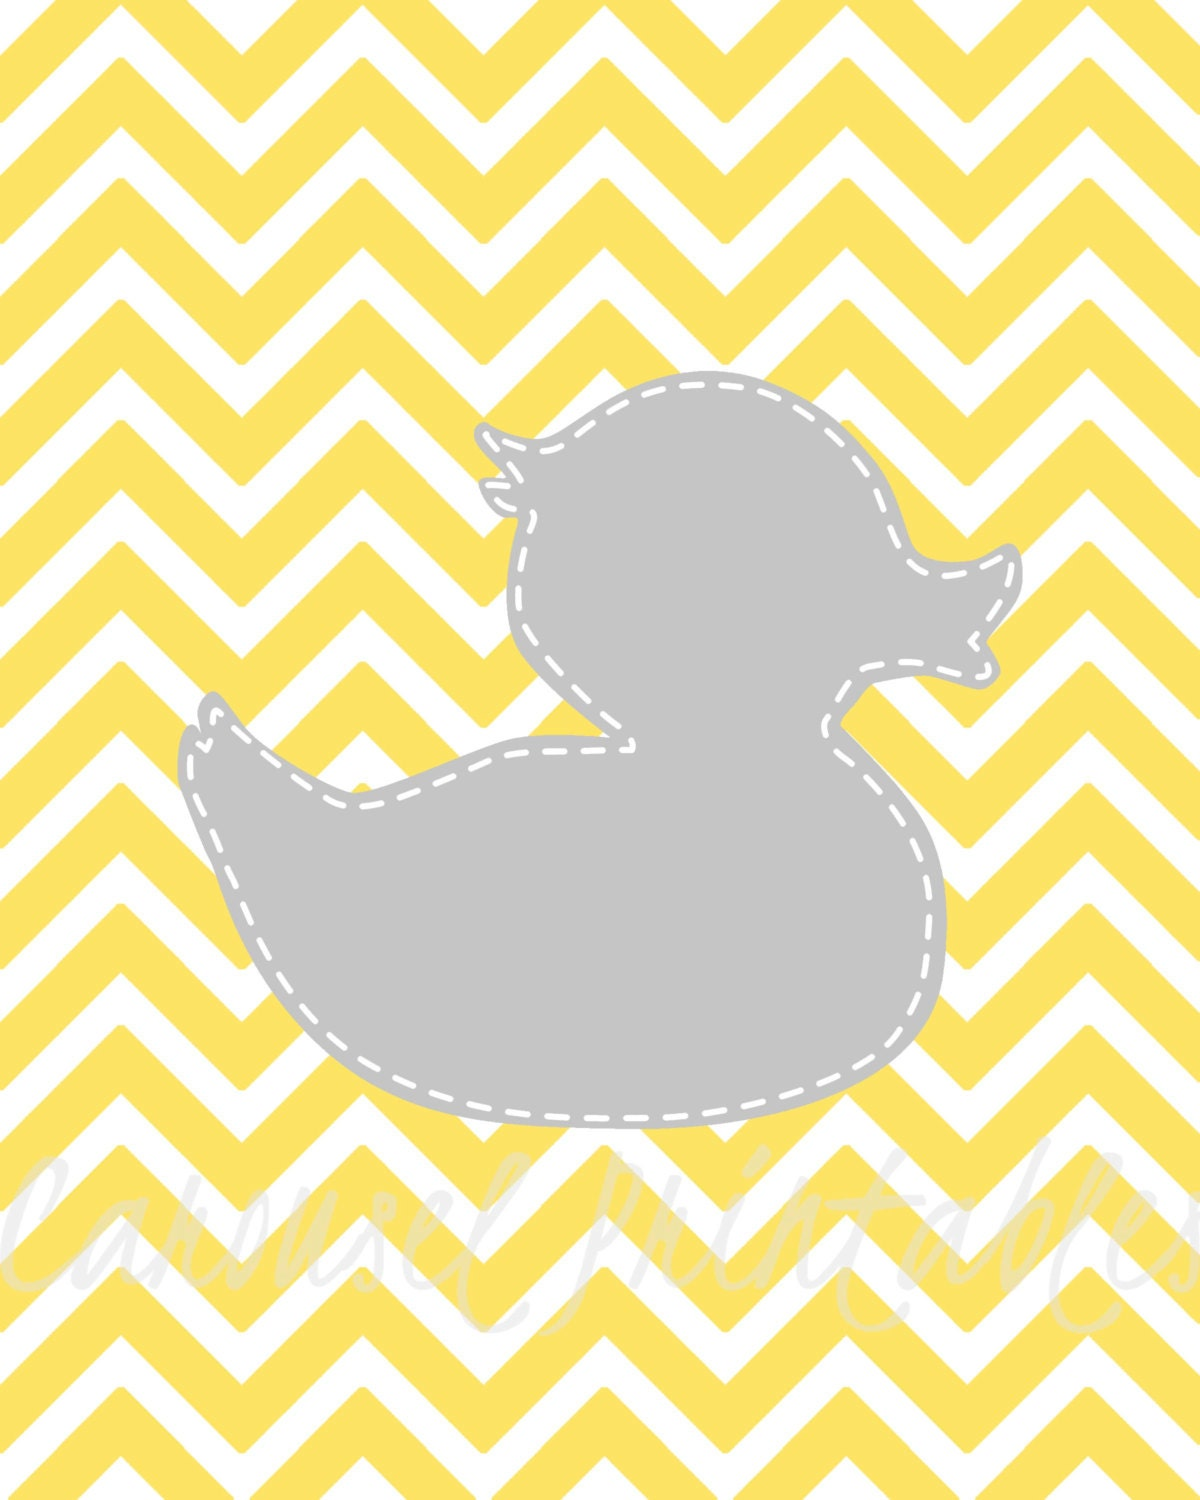 Rubber Duck Wall Art - Elitflat